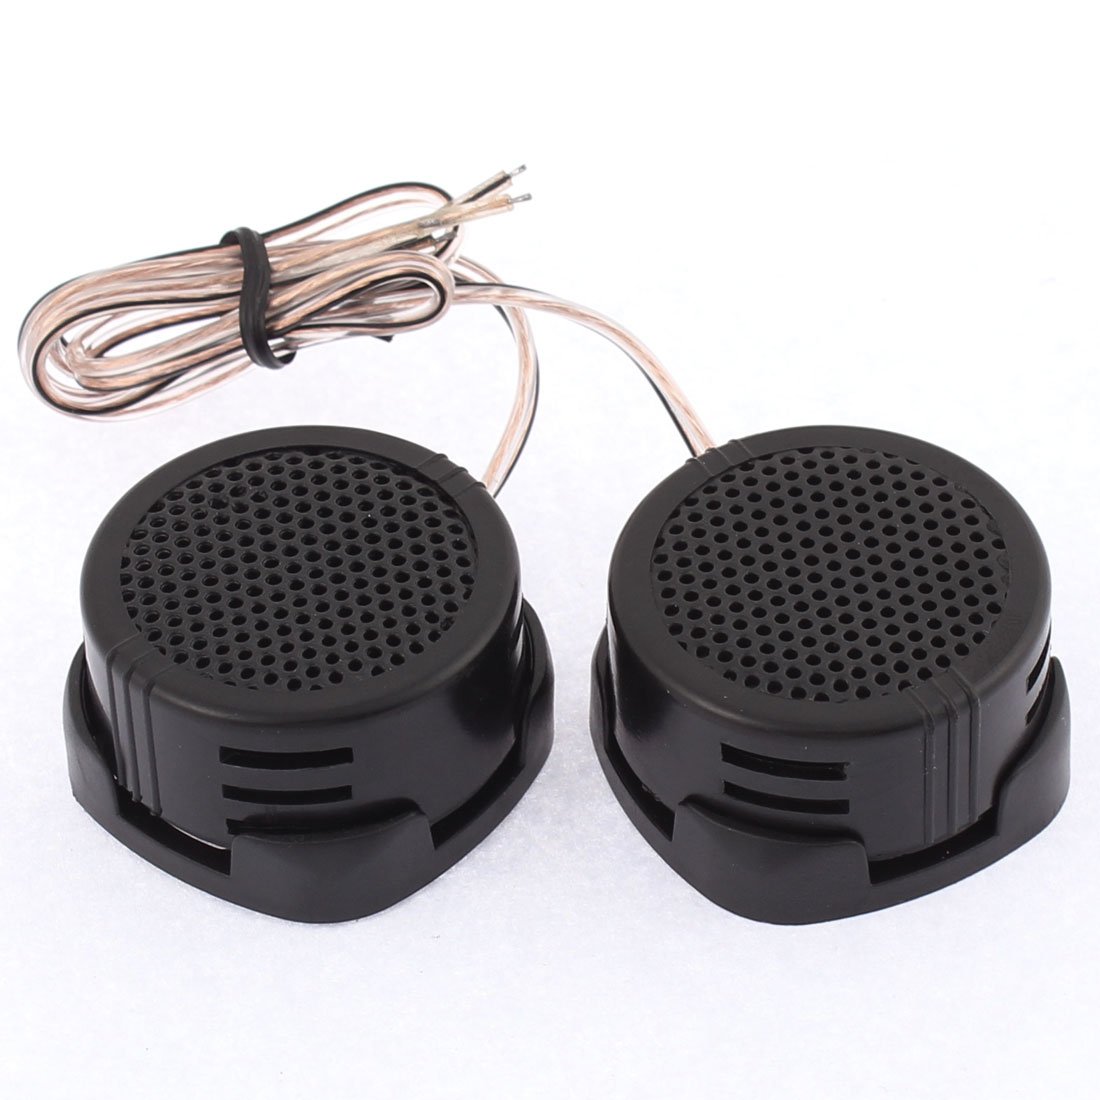 UXCELL Car Audio Speaker System High Efficiency 500W Dome Tweeter Black 2 Pcs